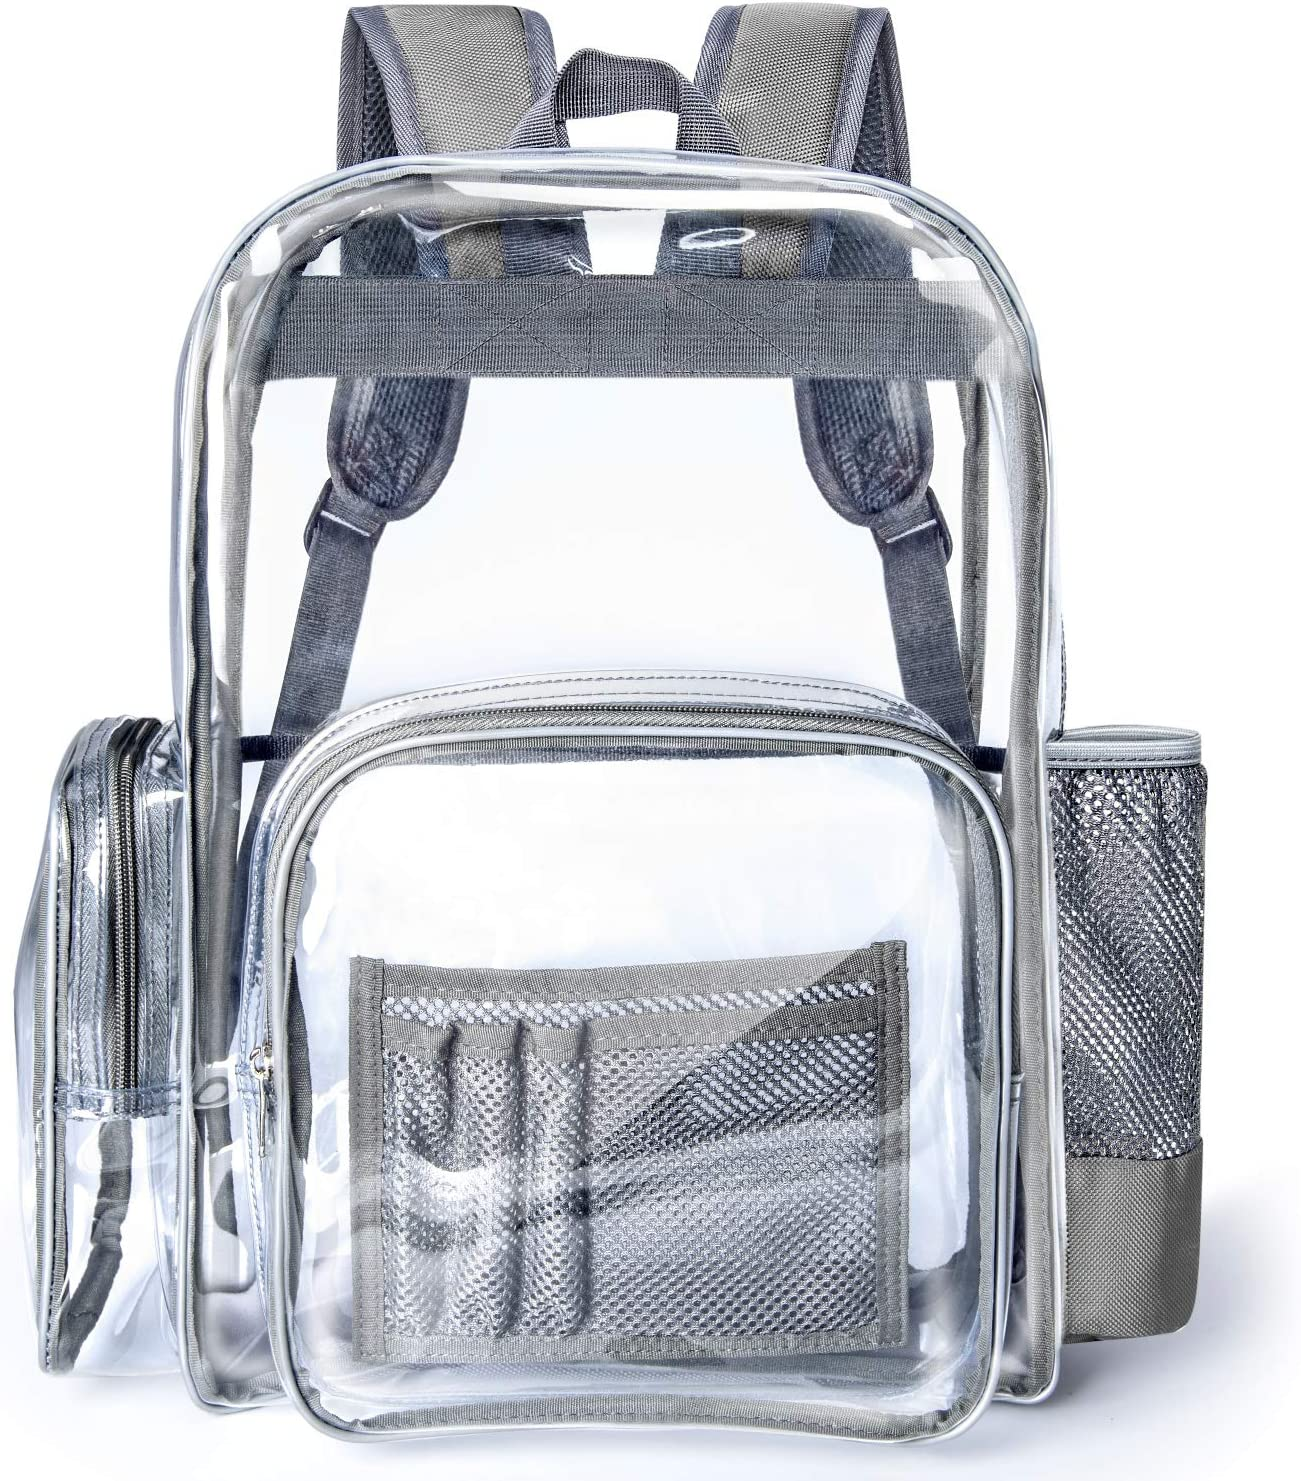 Clear Backpack, Packasso Heavy Duty Large Sturdy Waterproof Oxford Fabric Bottom Roomy Clear Bag for Adults, Boys, Girls, Security, Stadium, School, Work, Travel and More, Grey Straps